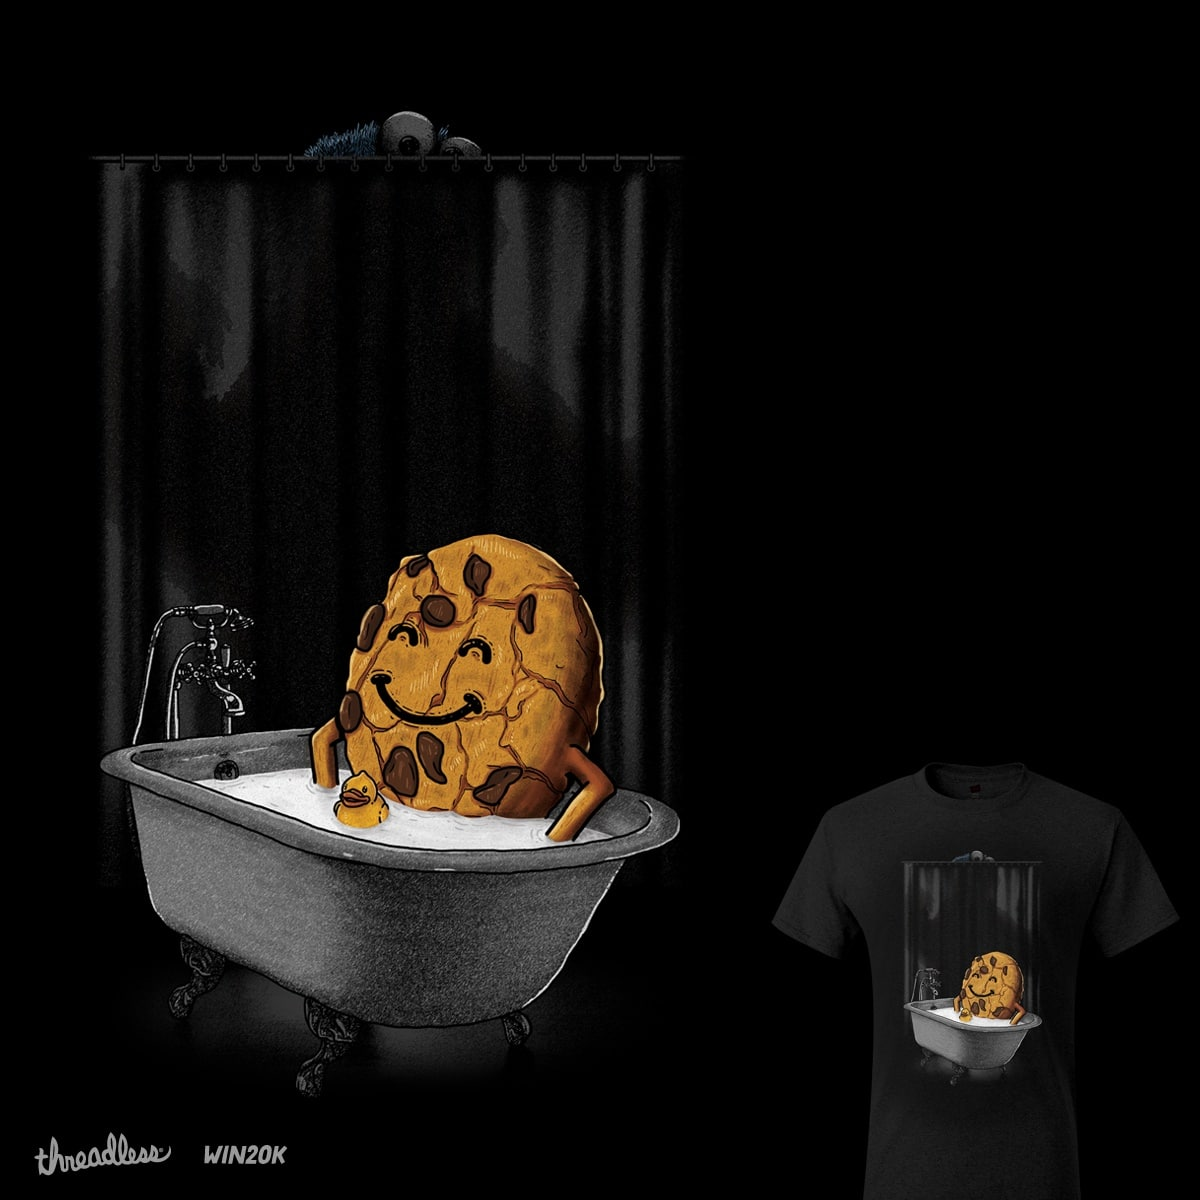 Psychotic Monster by eliude_valverde on Threadless